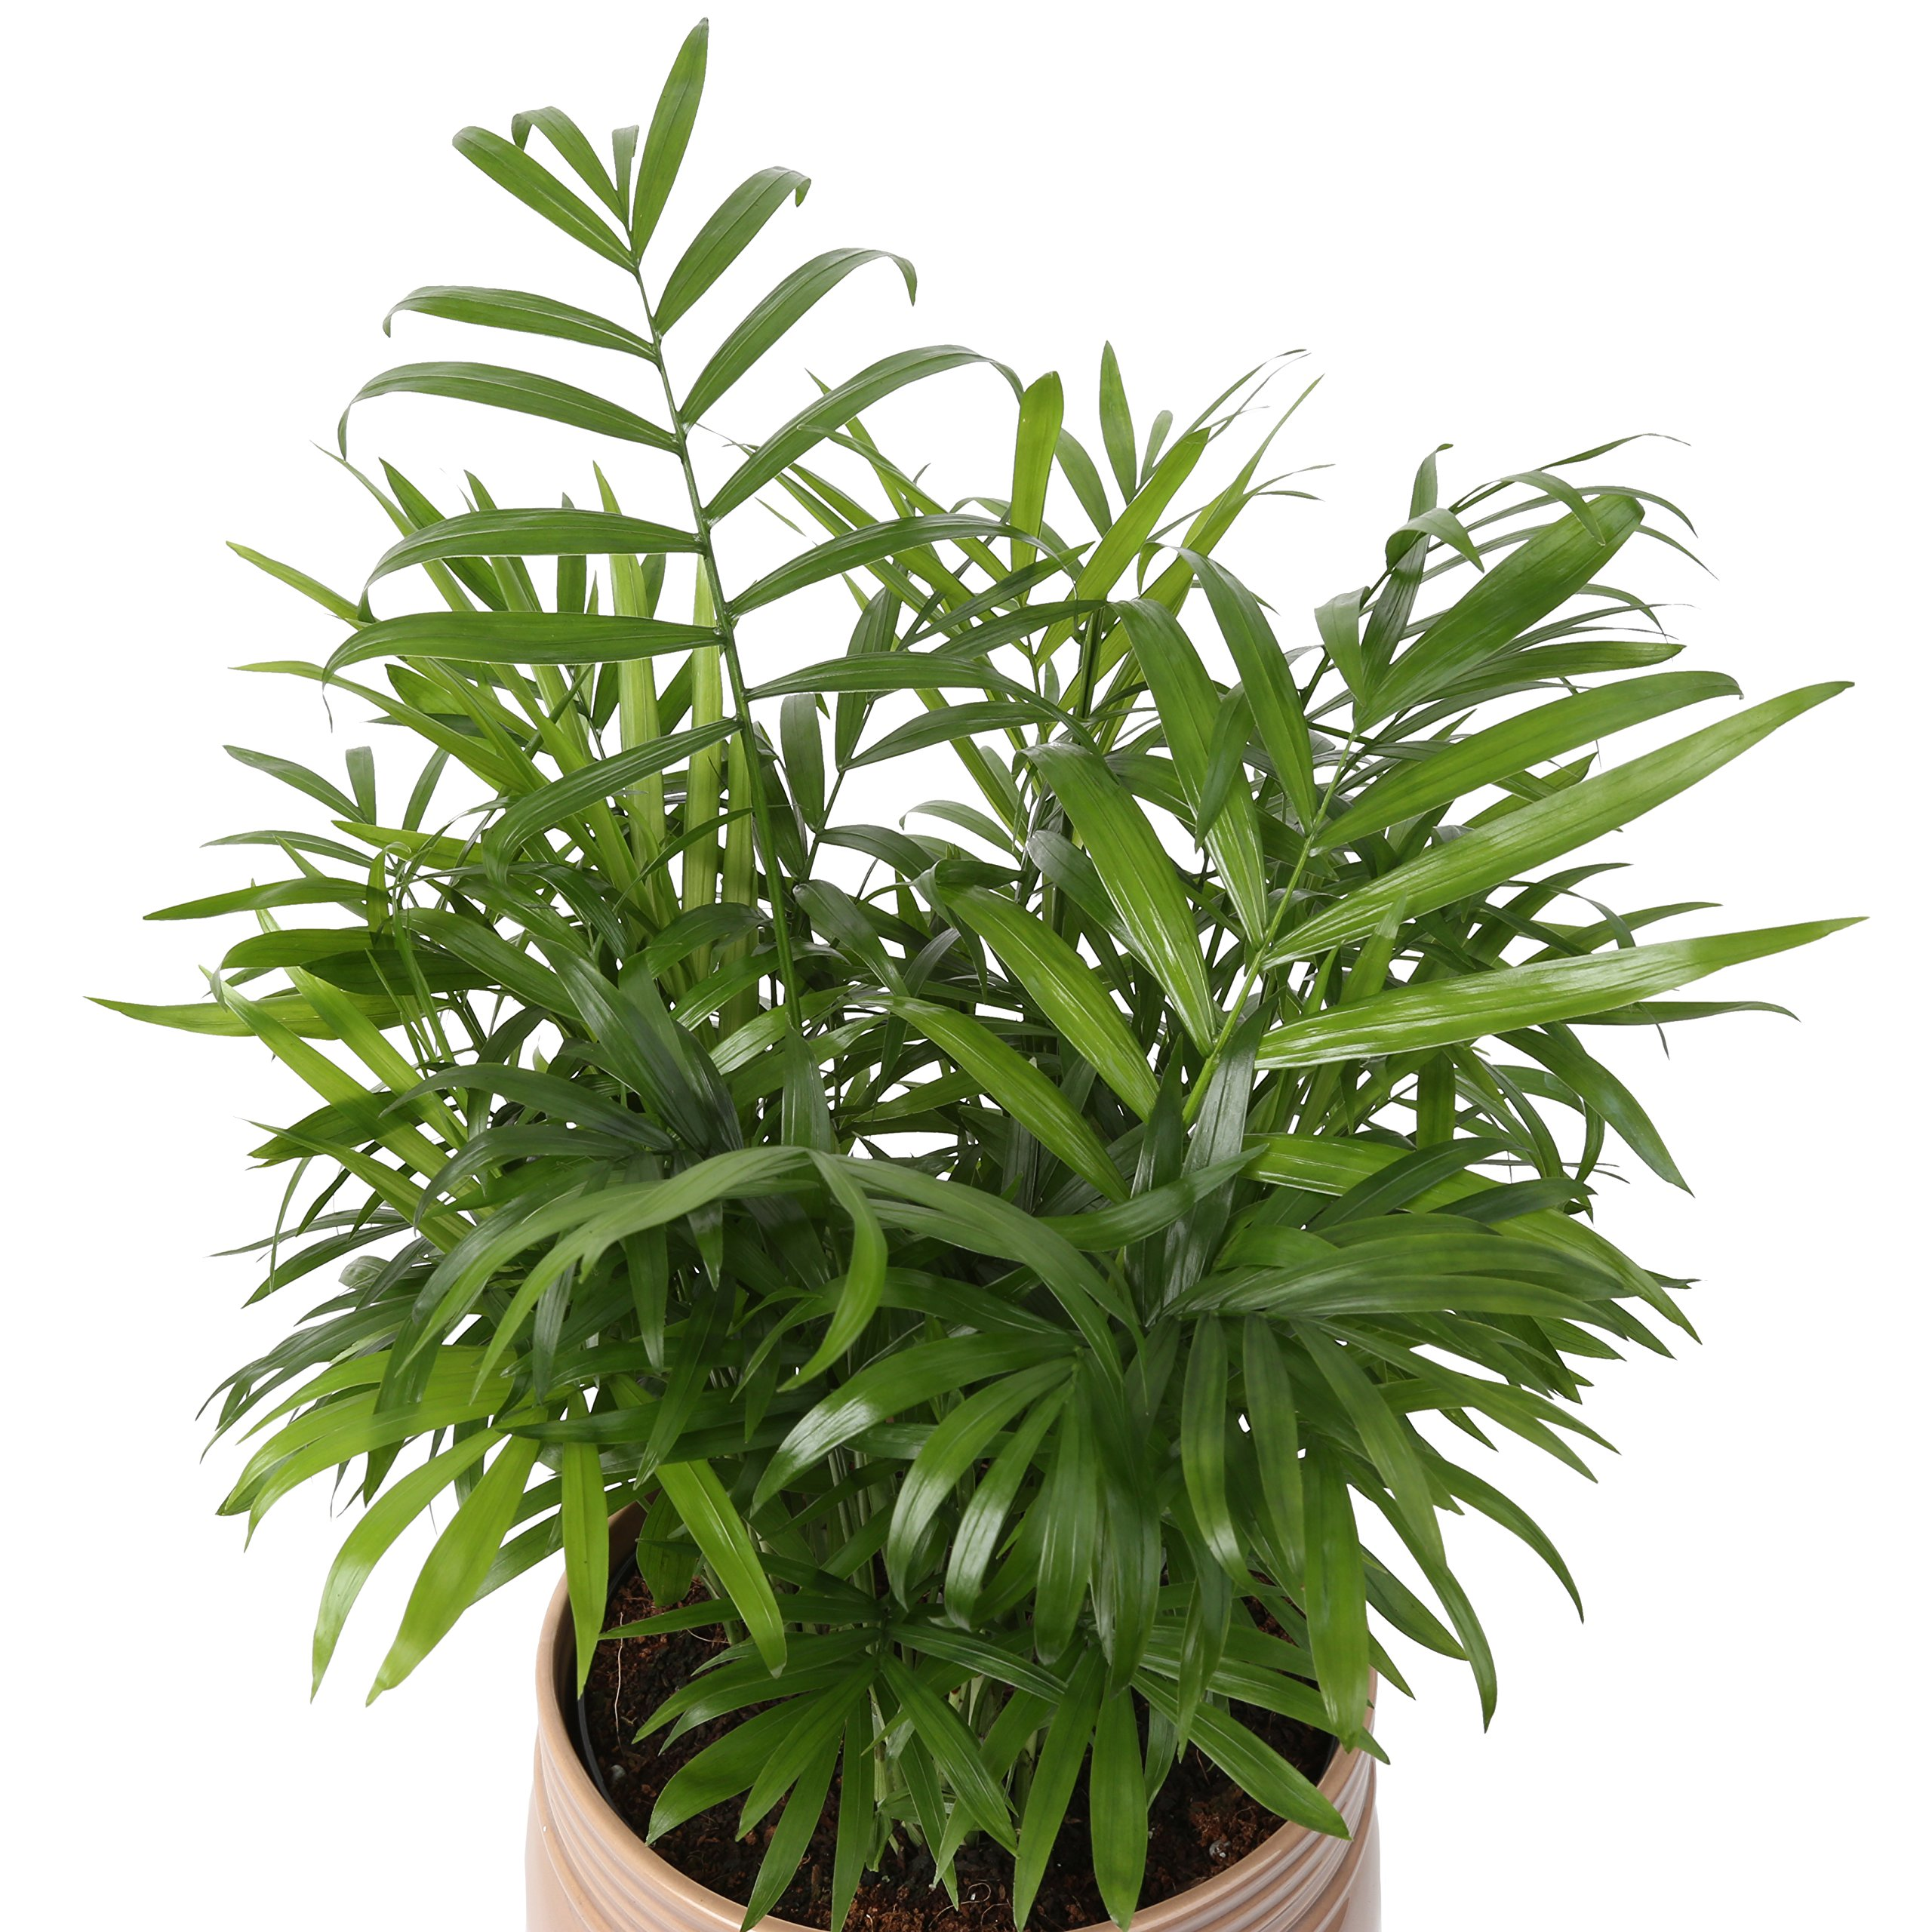 Costa Farms Neanthe Bella Parlor Palm, Live Indoor Tabletop Plant in Home Decor 6-inch Mason Jar Ceramic, Great for Gifts by Costa Farms (Image #2)